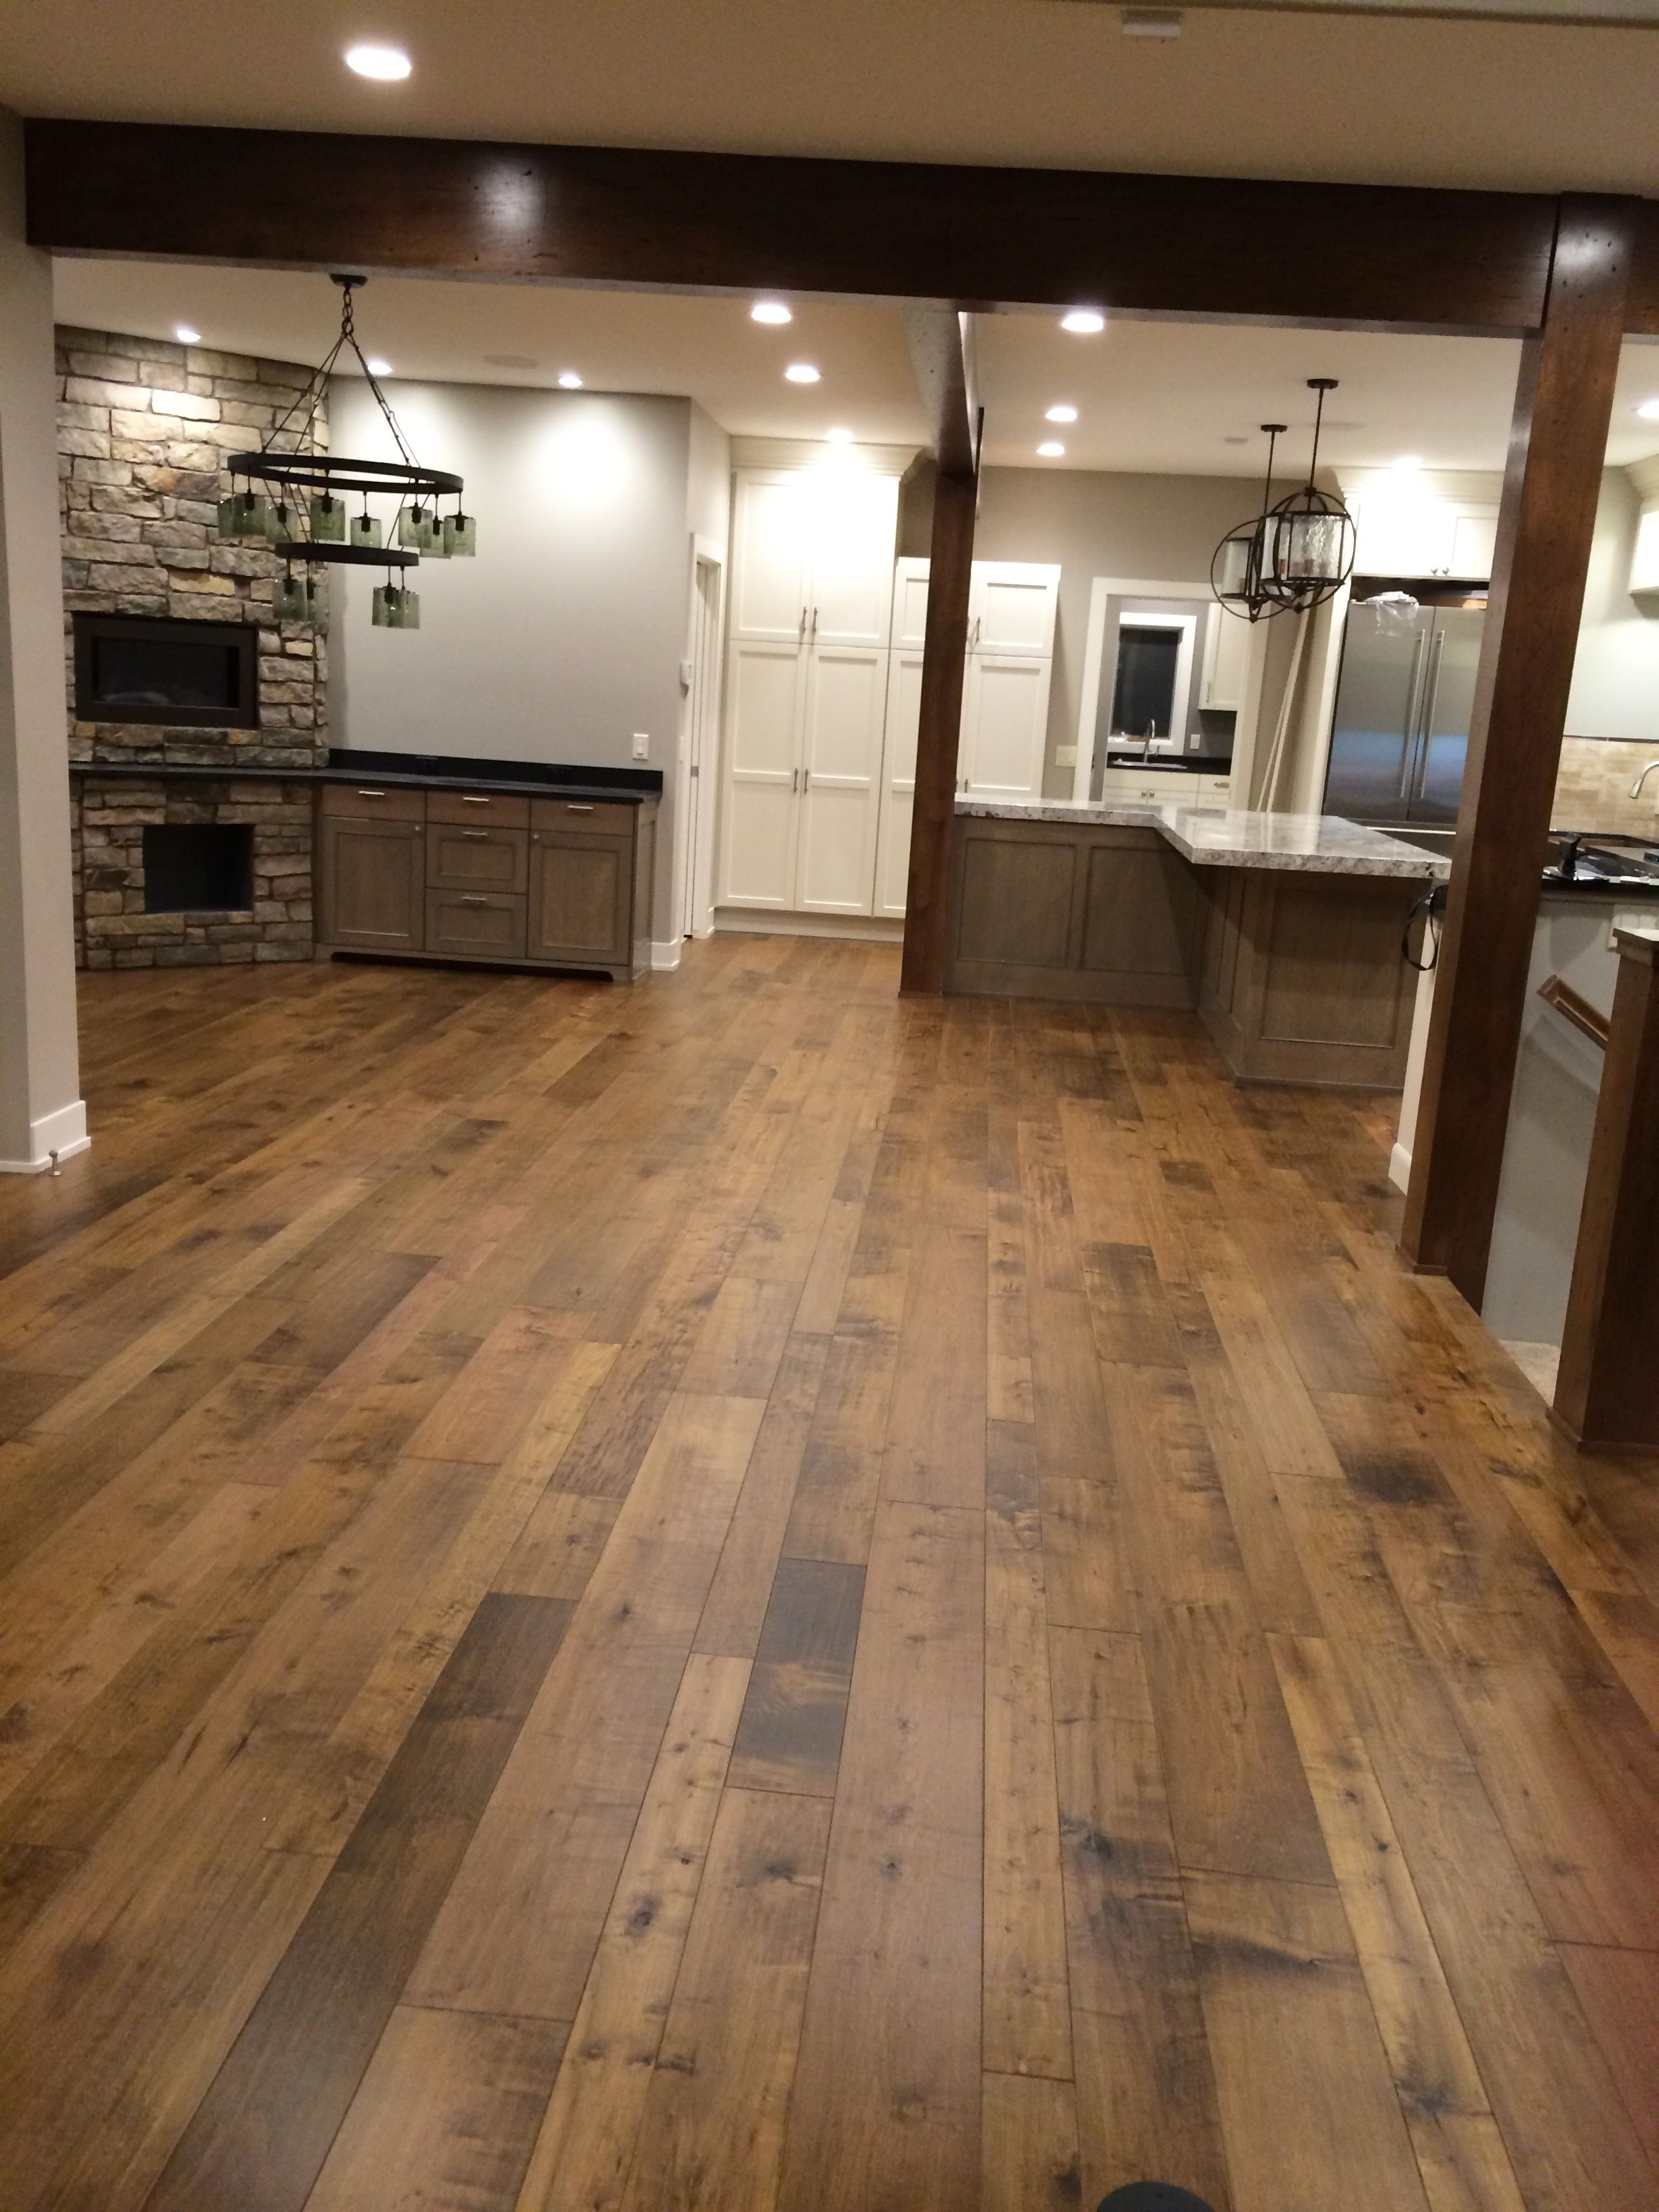 quality hardwood flooring of hardwood floors san francisco floor with hardwood floors san francisco monterey hardwood collection pinterest